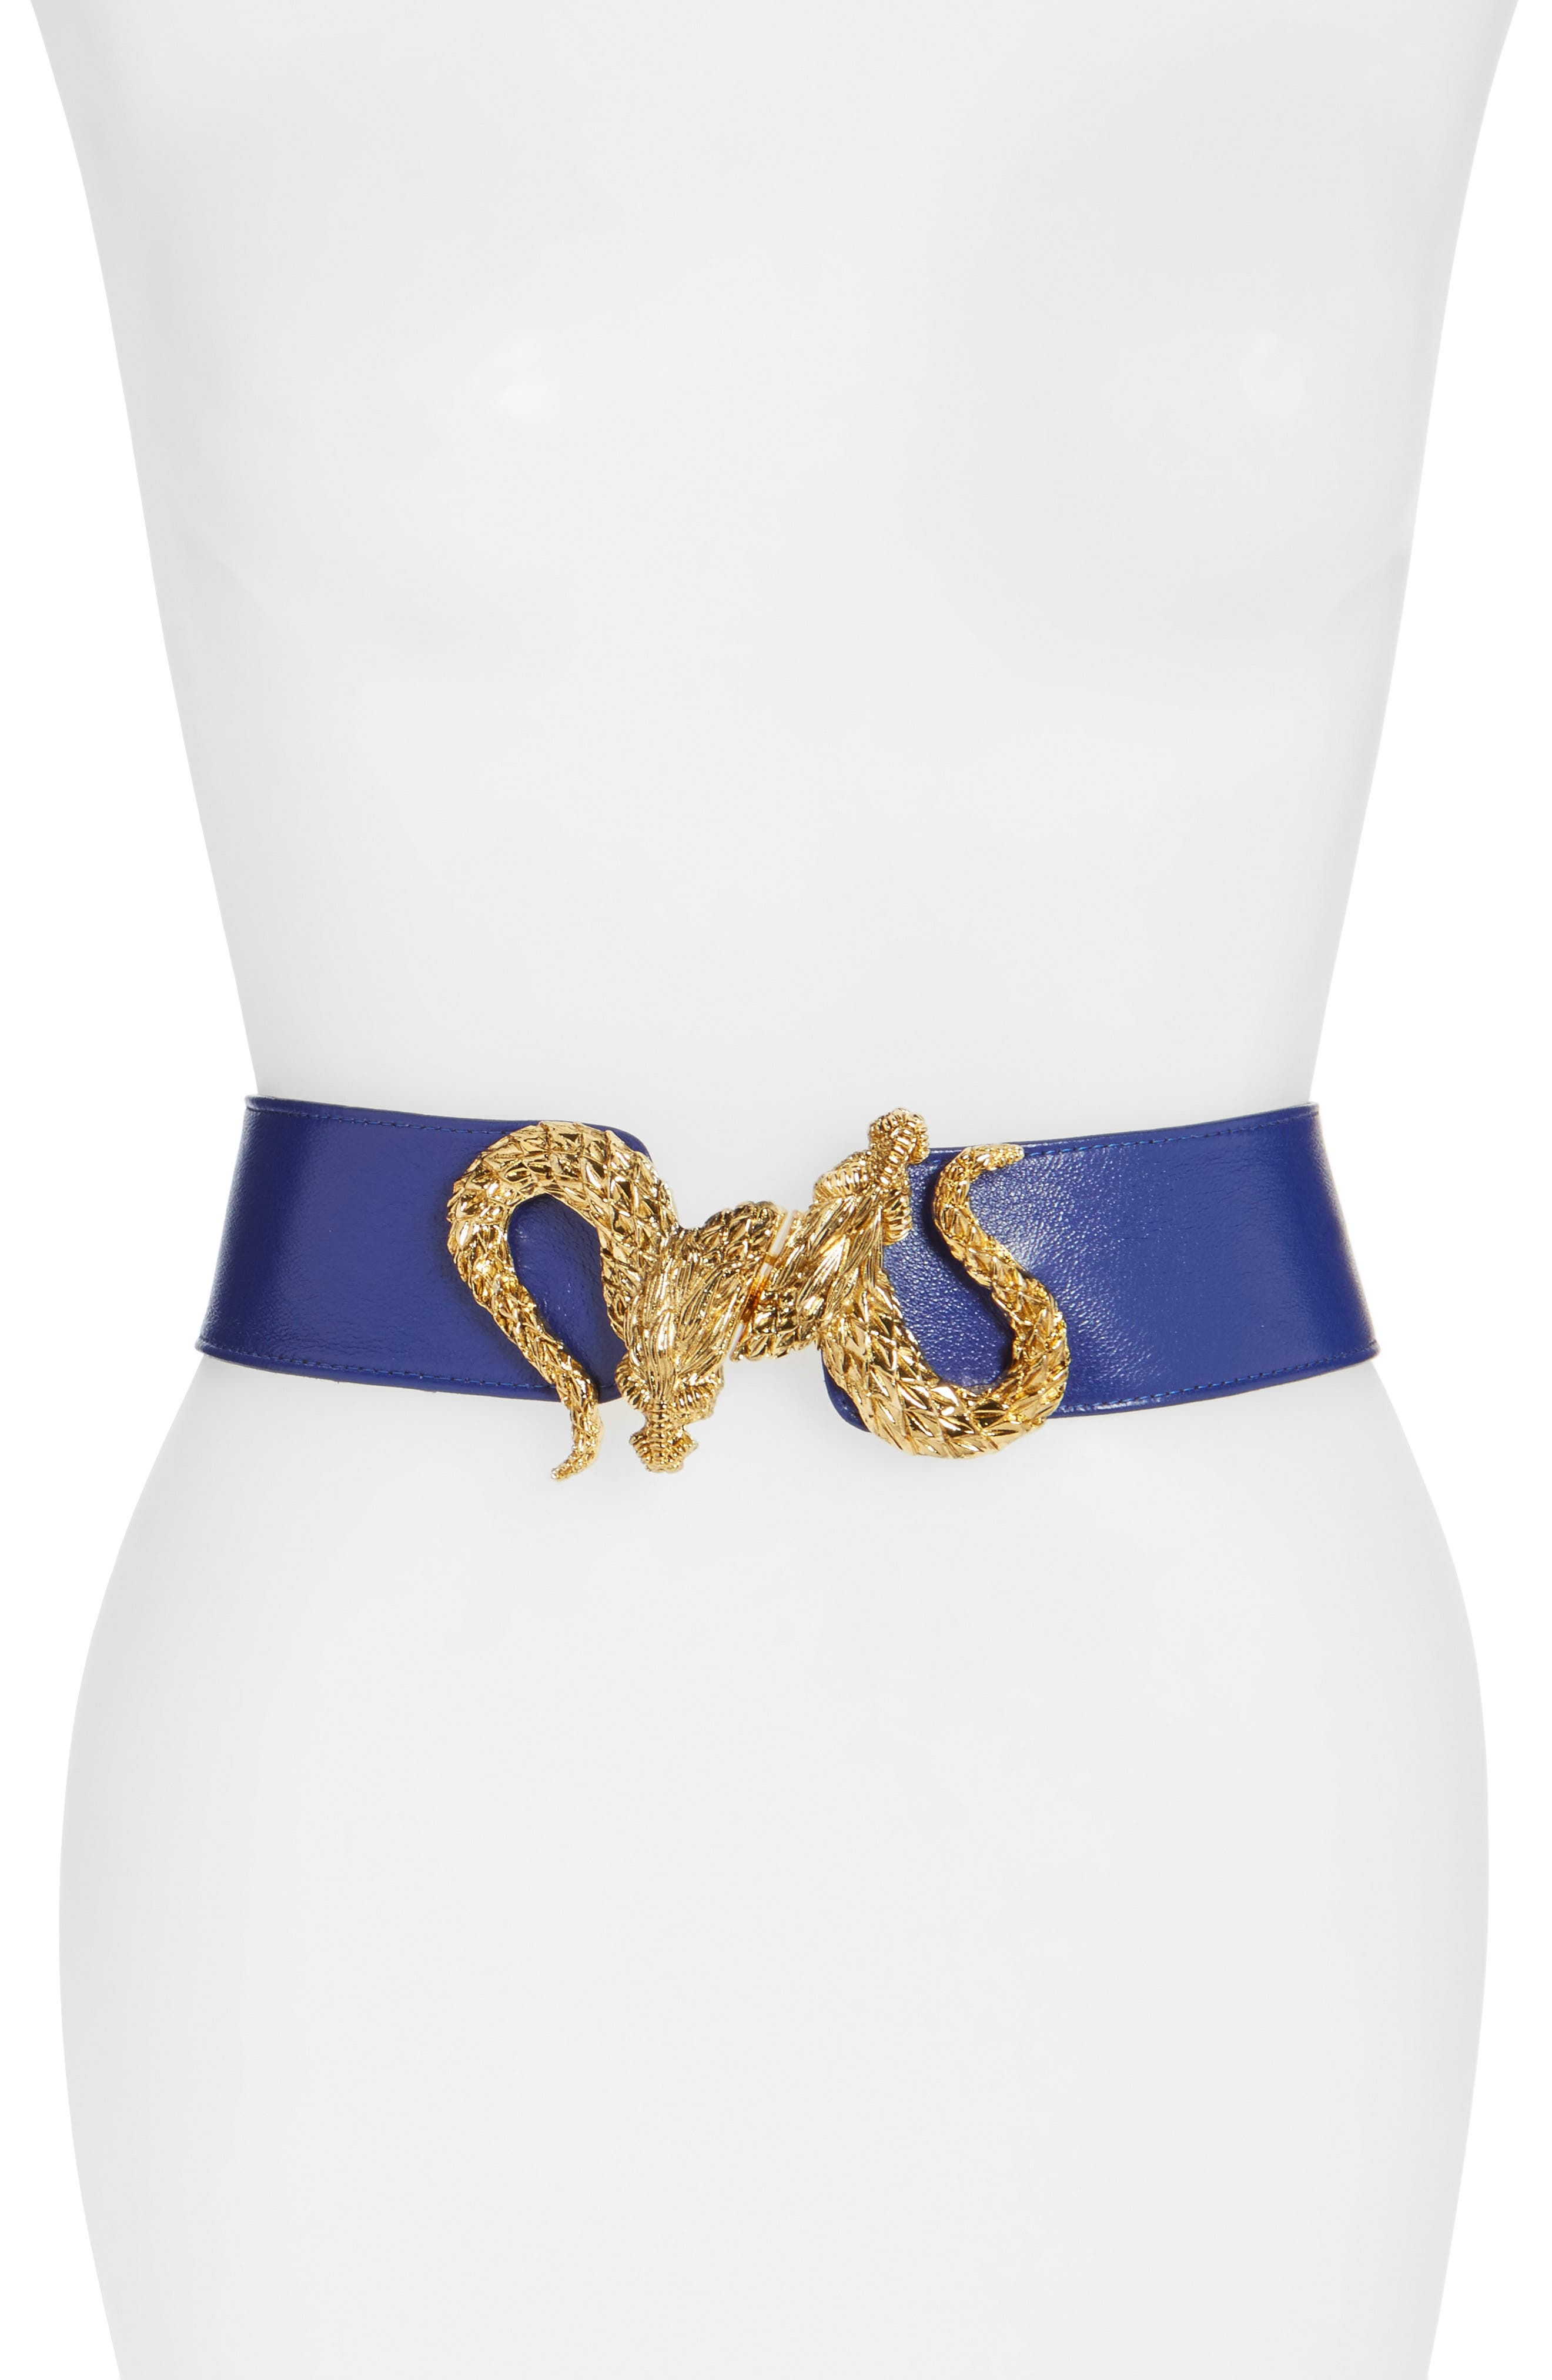 RAINA Penelope - Dragon Stretch Belt